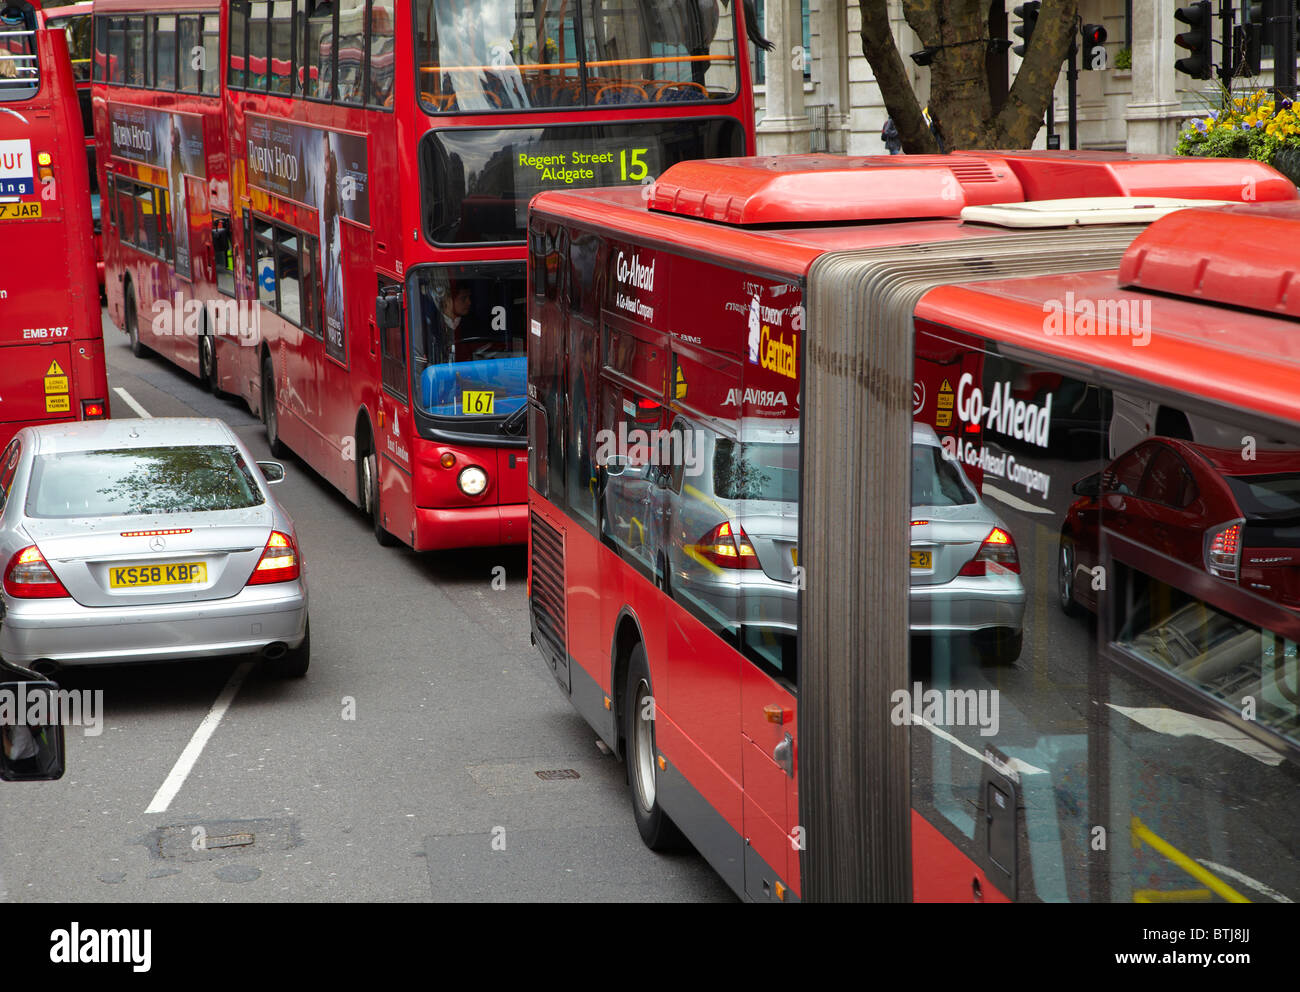 Traffic congestion, Trafalgar Square, London, England, United Kingdom - Stock Image